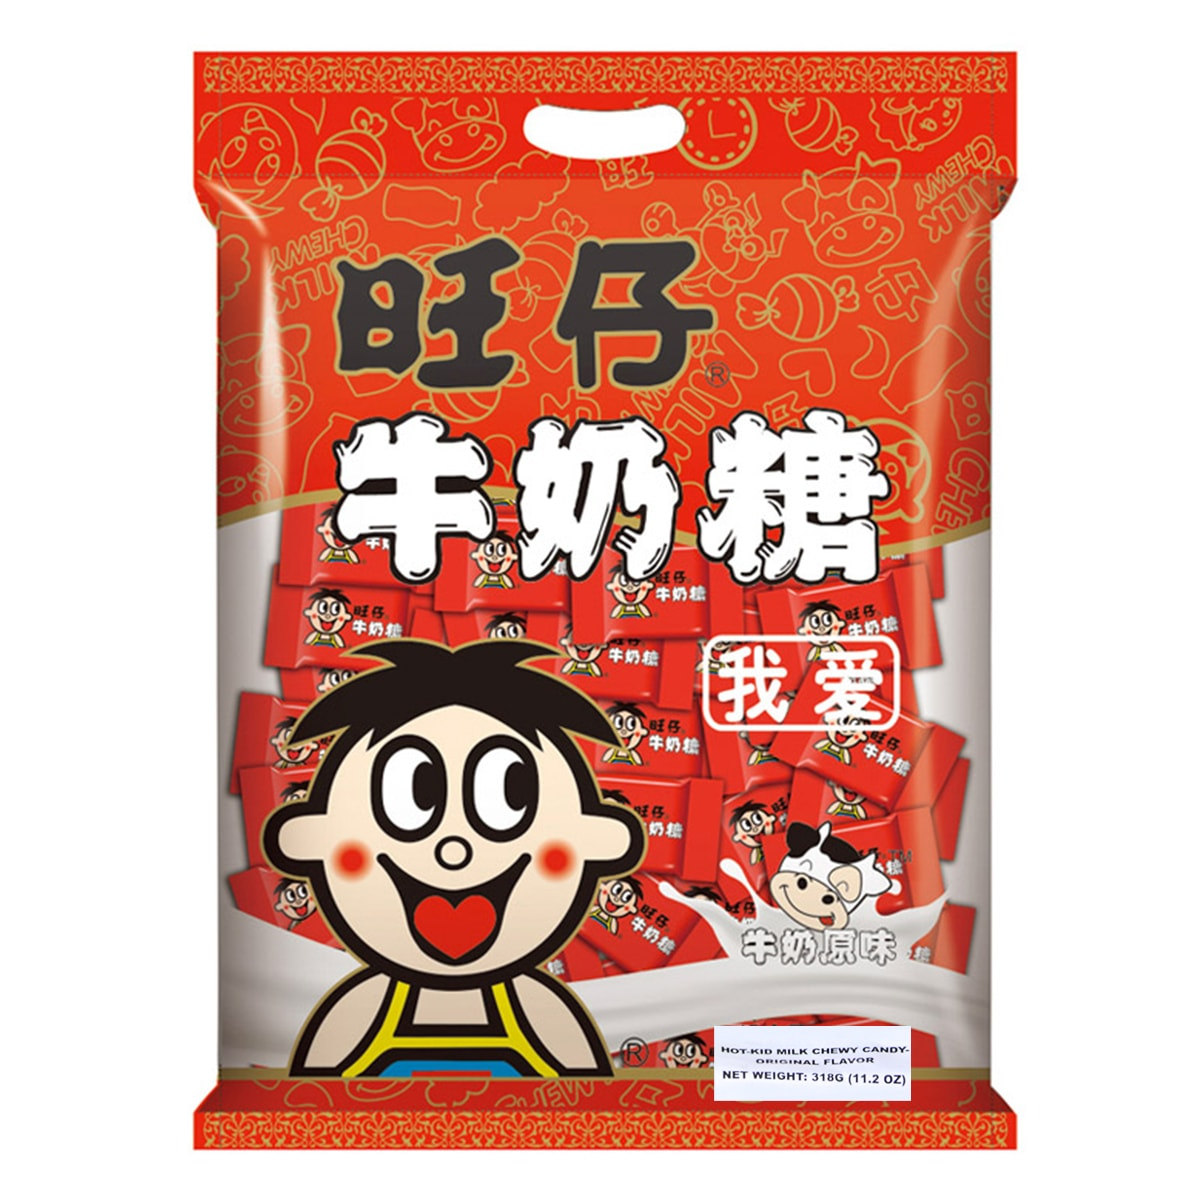 WANT WANT Hot-Kid Milk Chewy Candy Original Flavor 318g